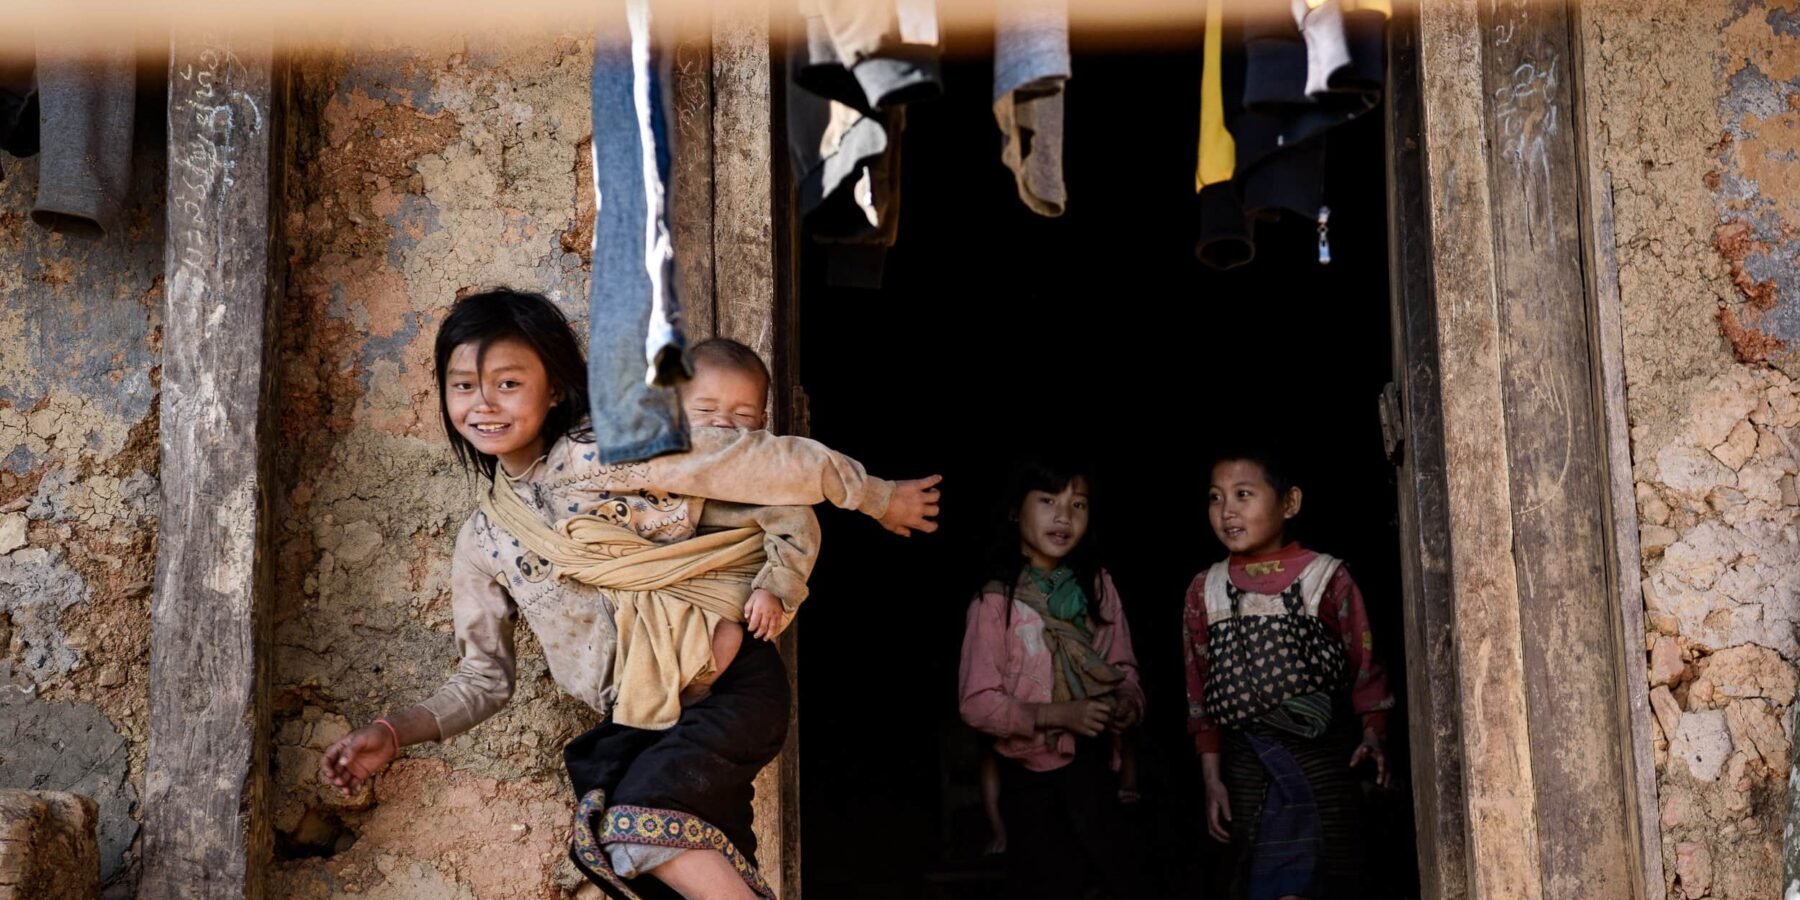 Mouchi tribe photography in Laos